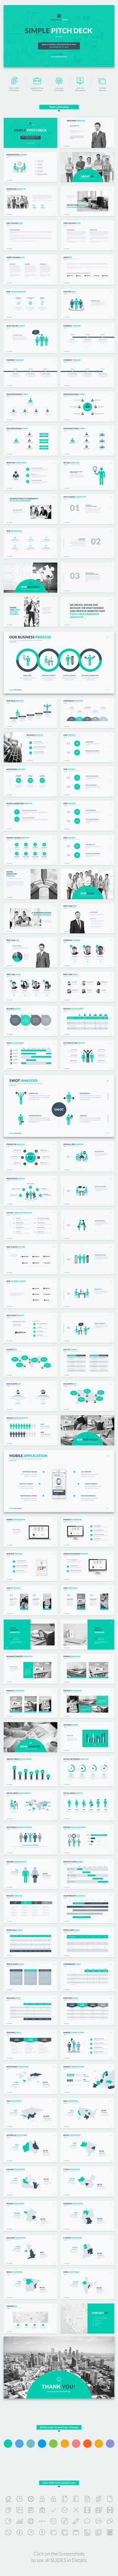 Simple Pitch Deck Keynote Template - Keynote - PowerPoint - Pitch - Deck - Pitch Deck - Inspirational - Beautiful - Minimal - Creative - Professional - Simple - Presentation - Brief Showcase - Free